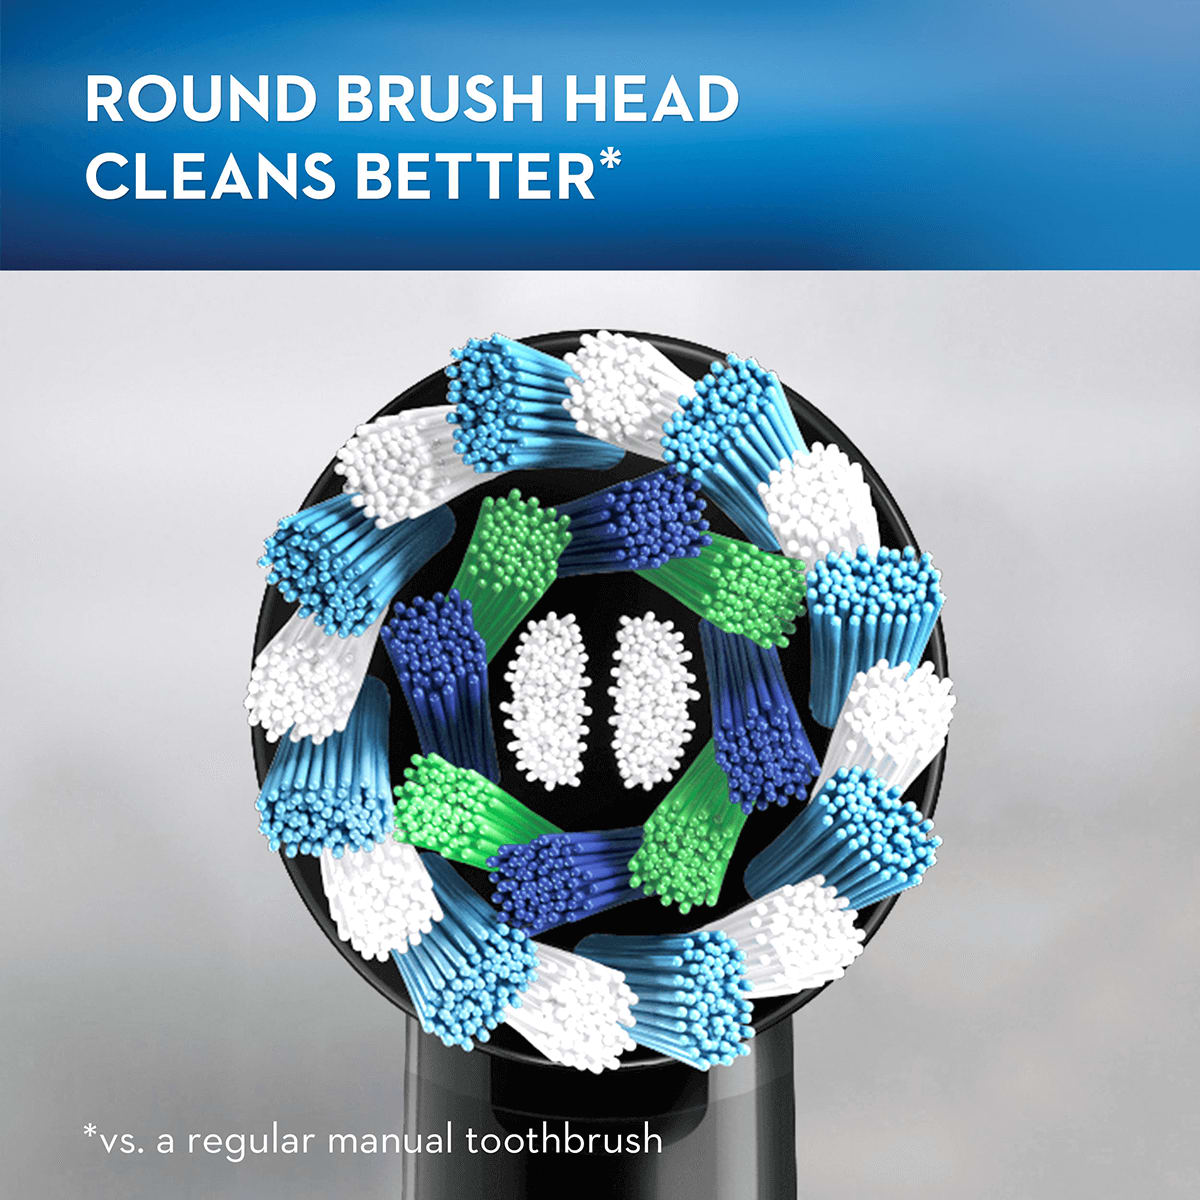 round brush head cleans better